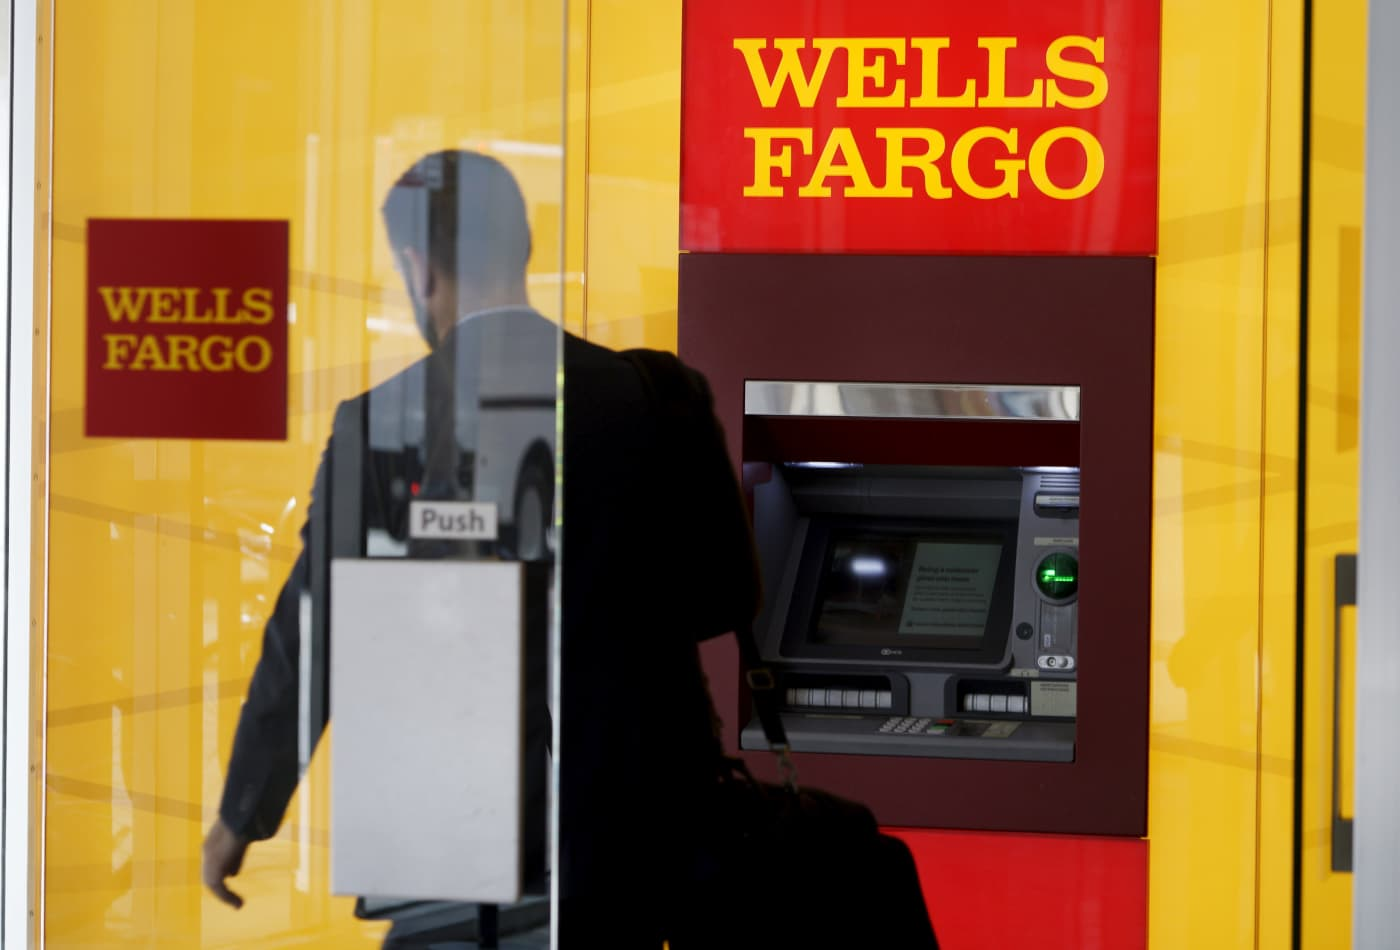 Wells Fargo to pay $3 billion in setting criminal and civil investigations into its fraudulent sales practices